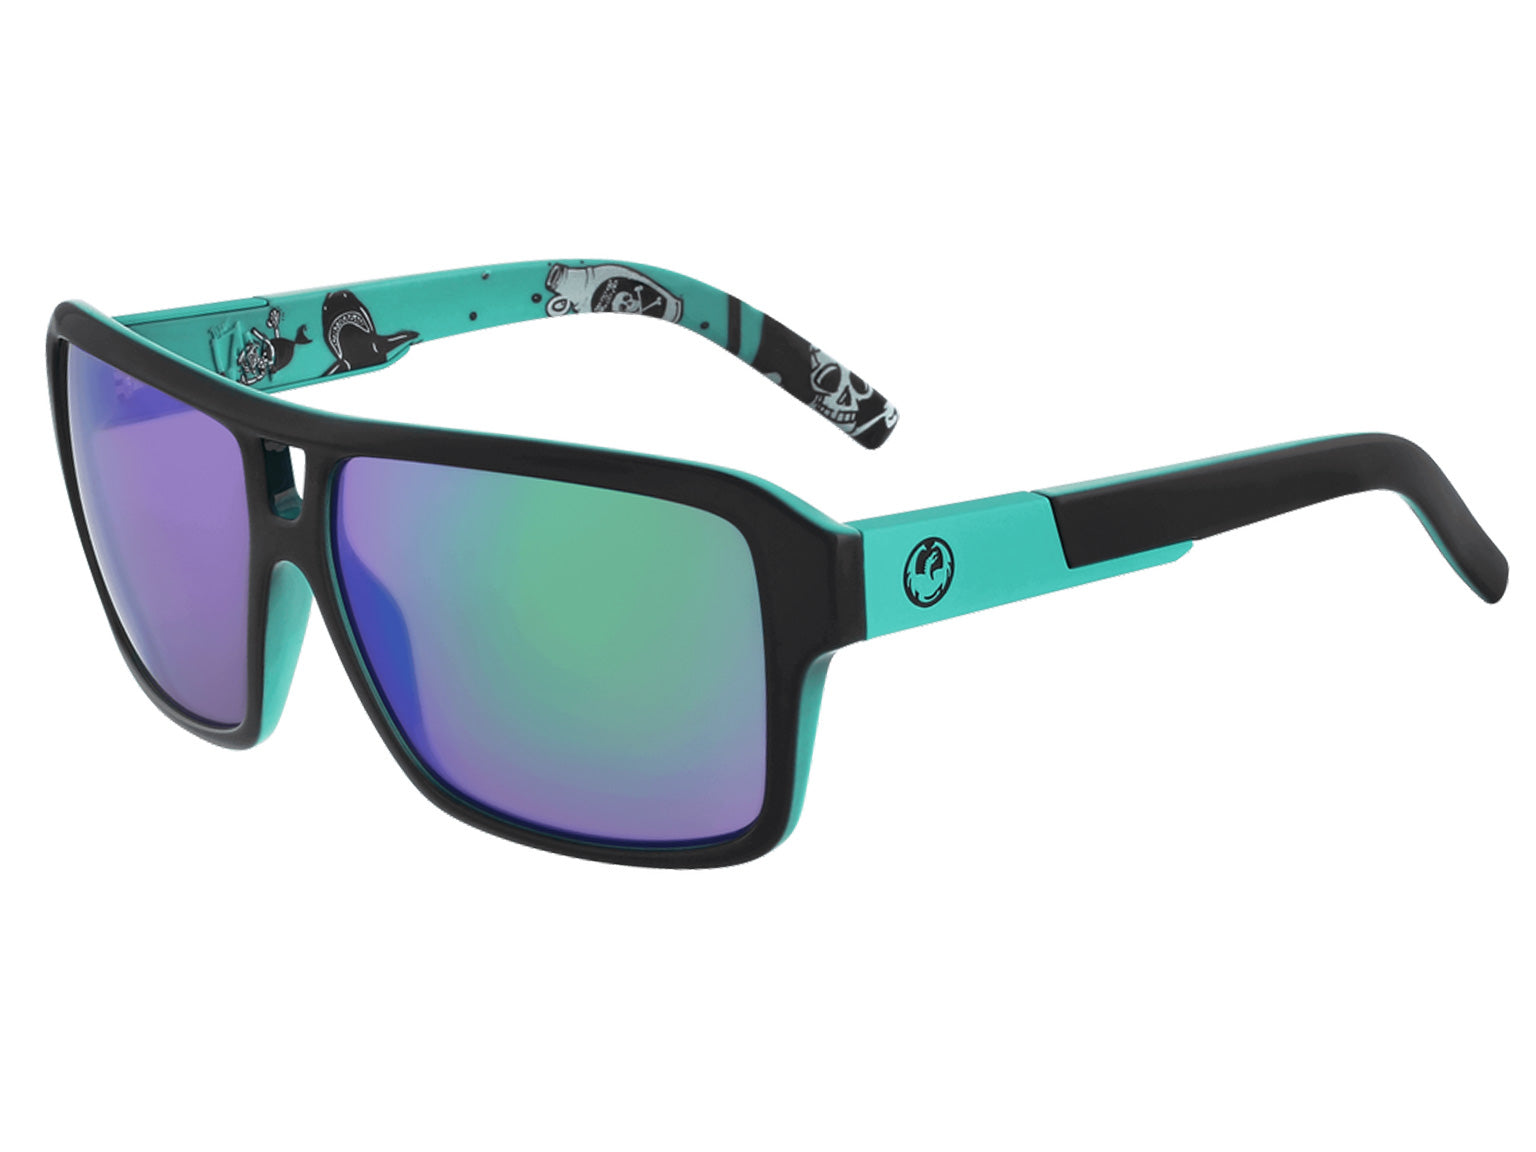 THE JAM - Owen Wright Signature Jet Teal ; with Lumalens Green Ionized Lens